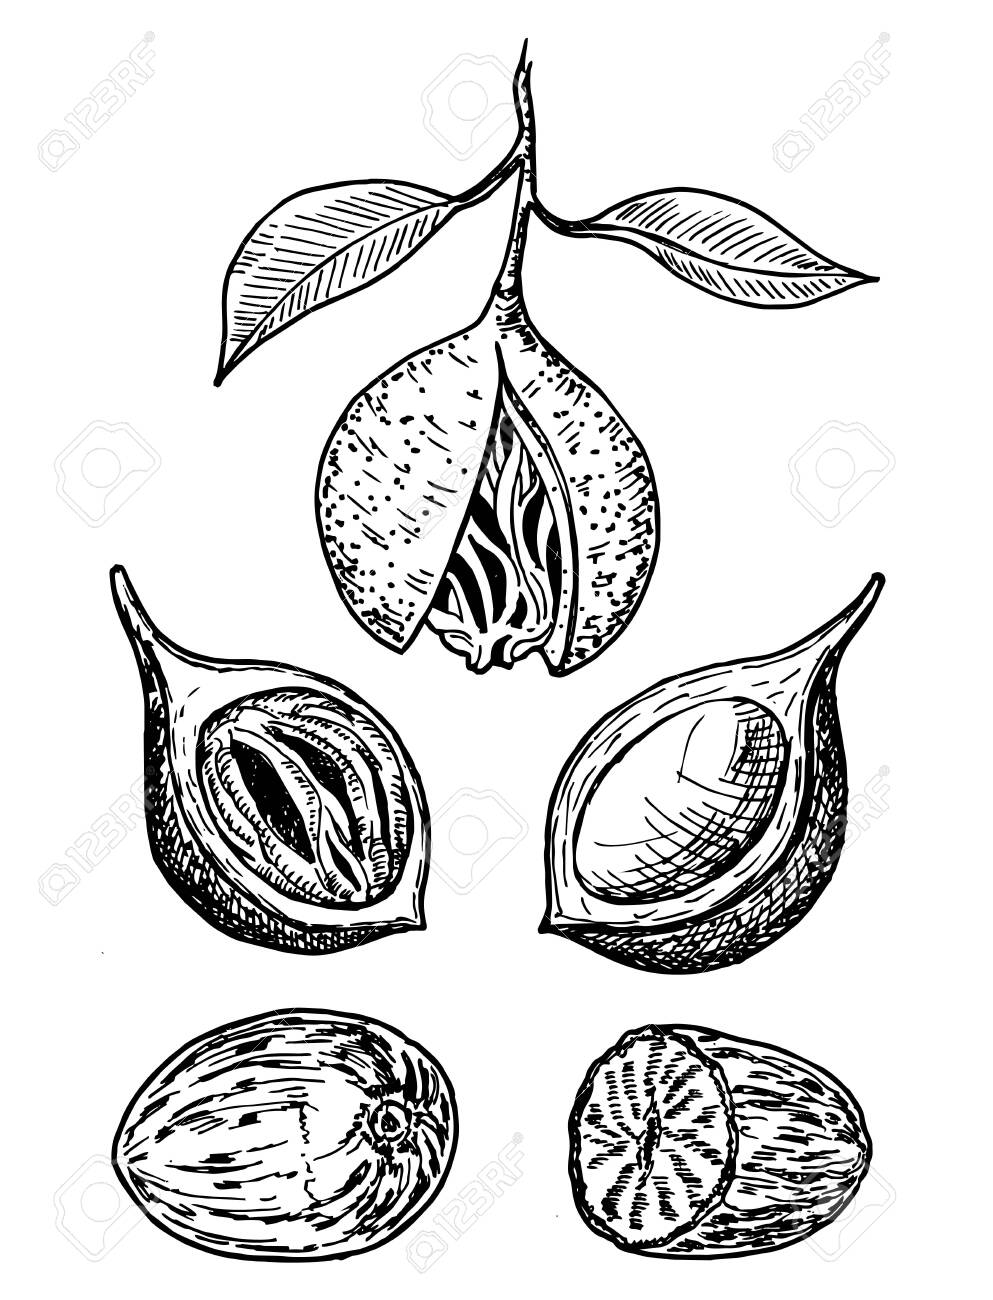 Nutmeg spice vector sketch. Ground seasoning nut. Dried seeds and fresh mace fruits - 131908090